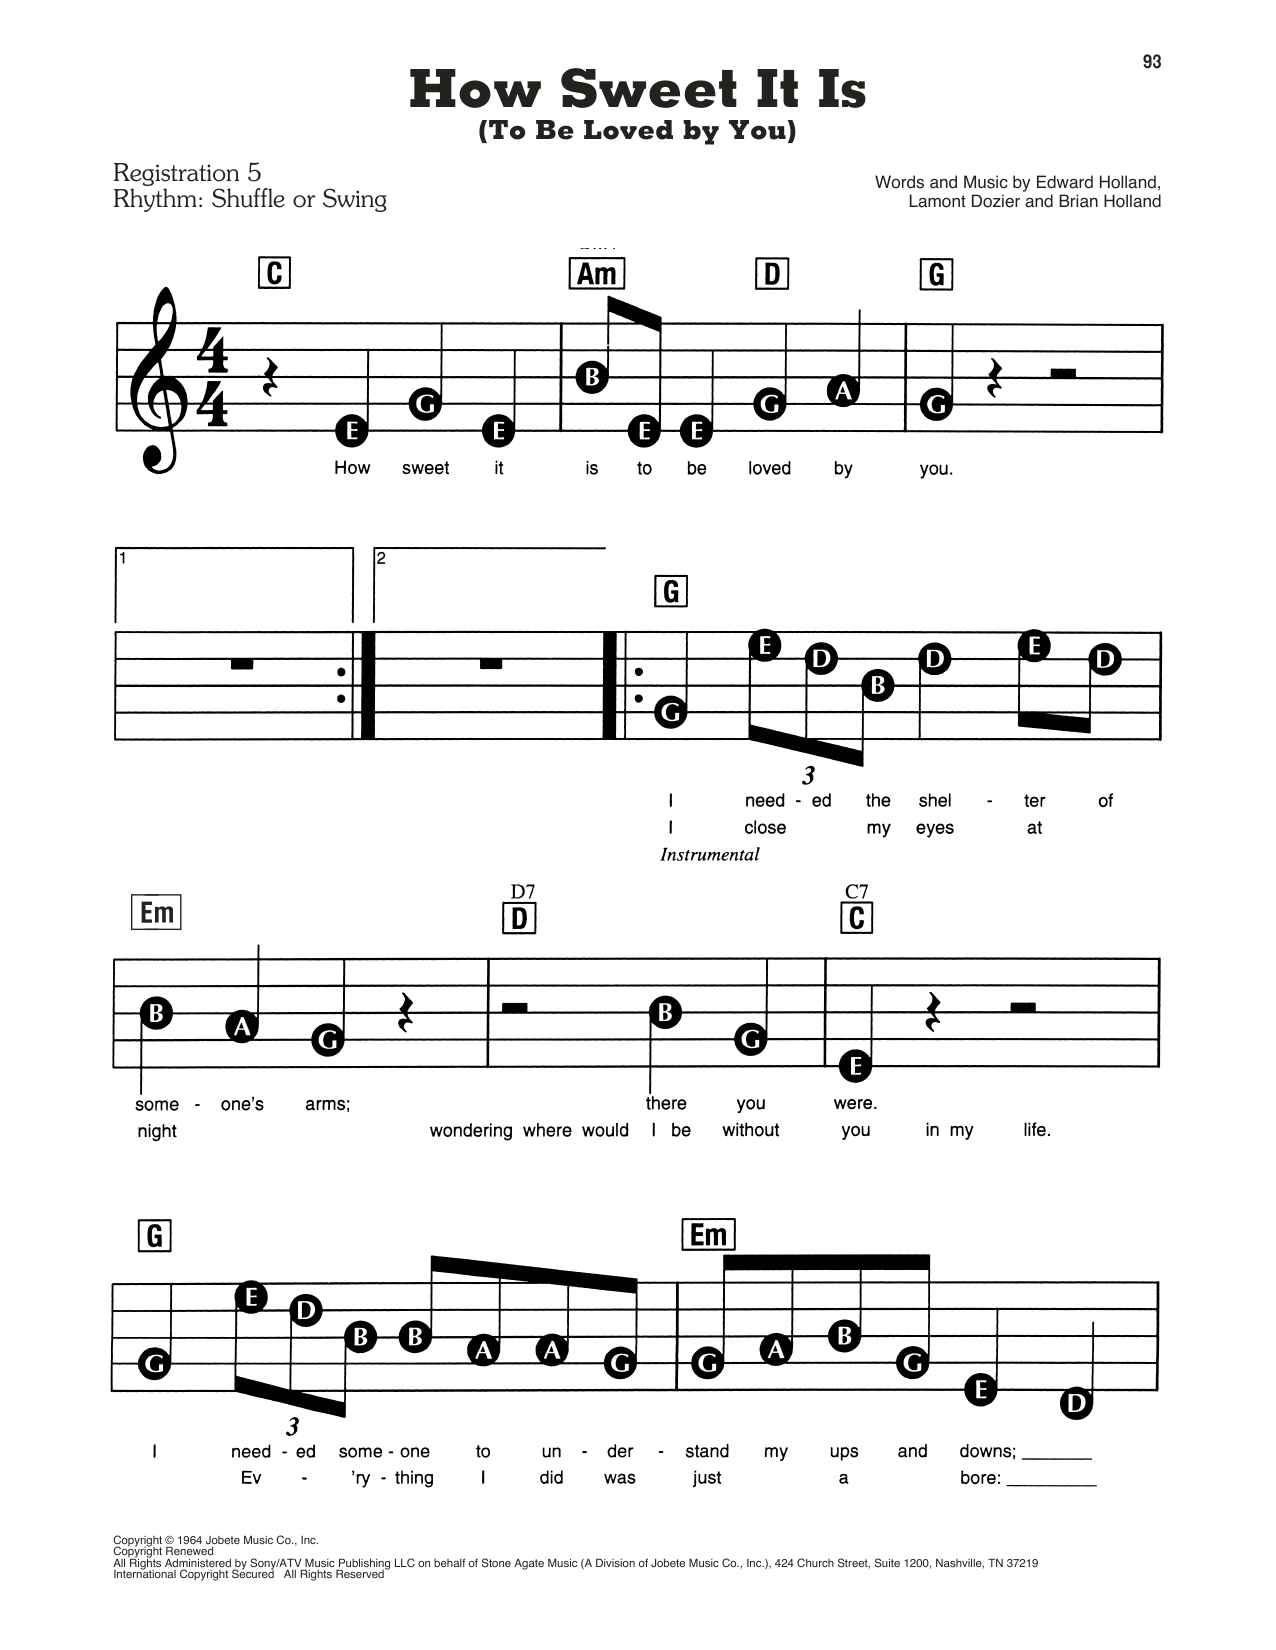 Deke Sharon 'How Sweet It Is To Be Loved by You' Sheet Music Notes,  Chords   Download Printable Choral   SKU 15